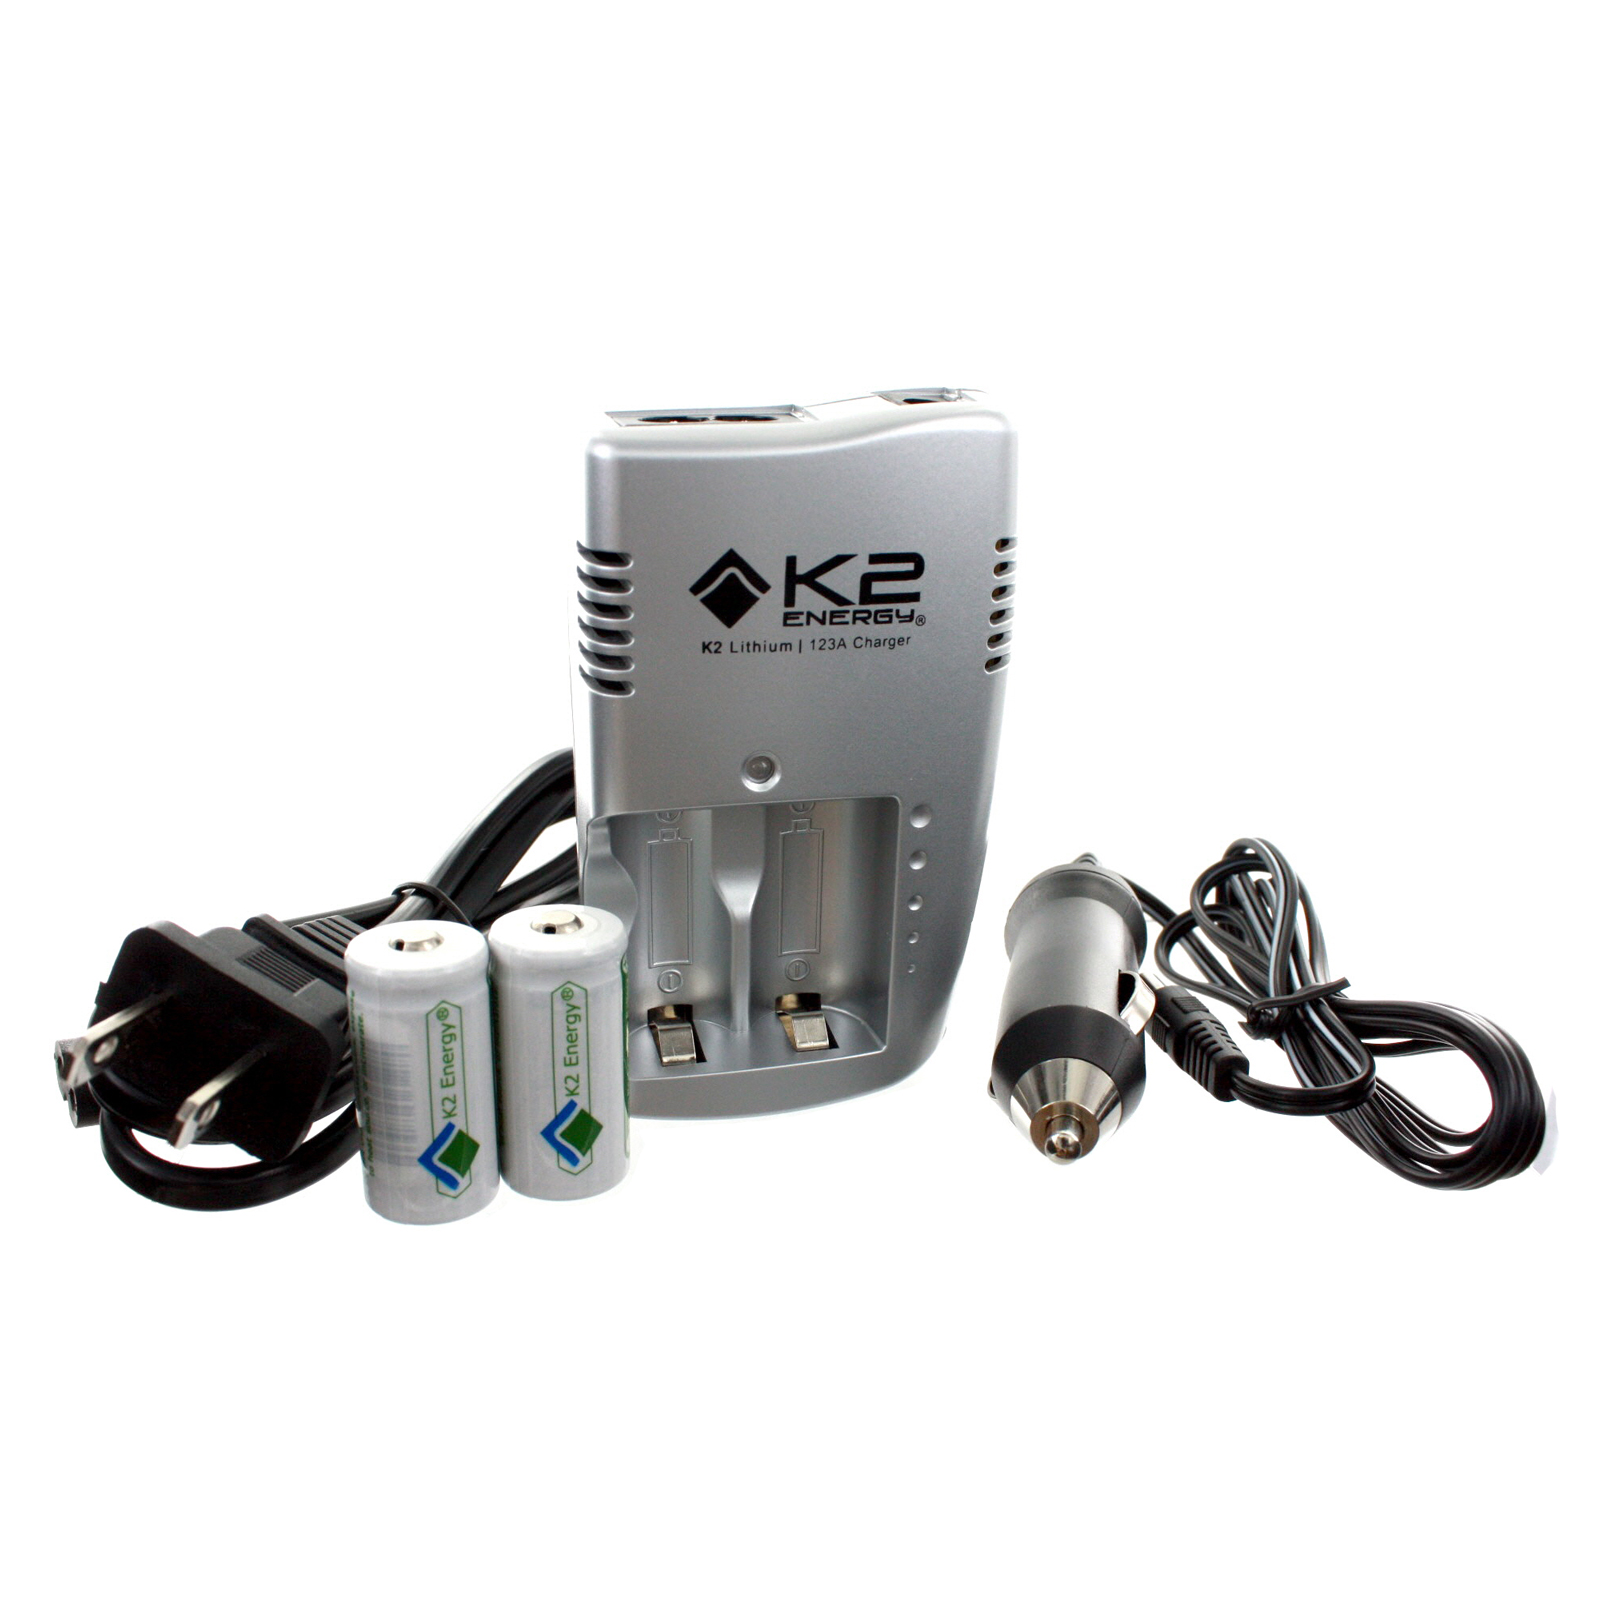 K2 energy k2c123a battery charger with 2 lfp123a 32v li ion k2 energy k2c123a battery charger with 2 lfp123a 32v li ion batteries fandeluxe Choice Image